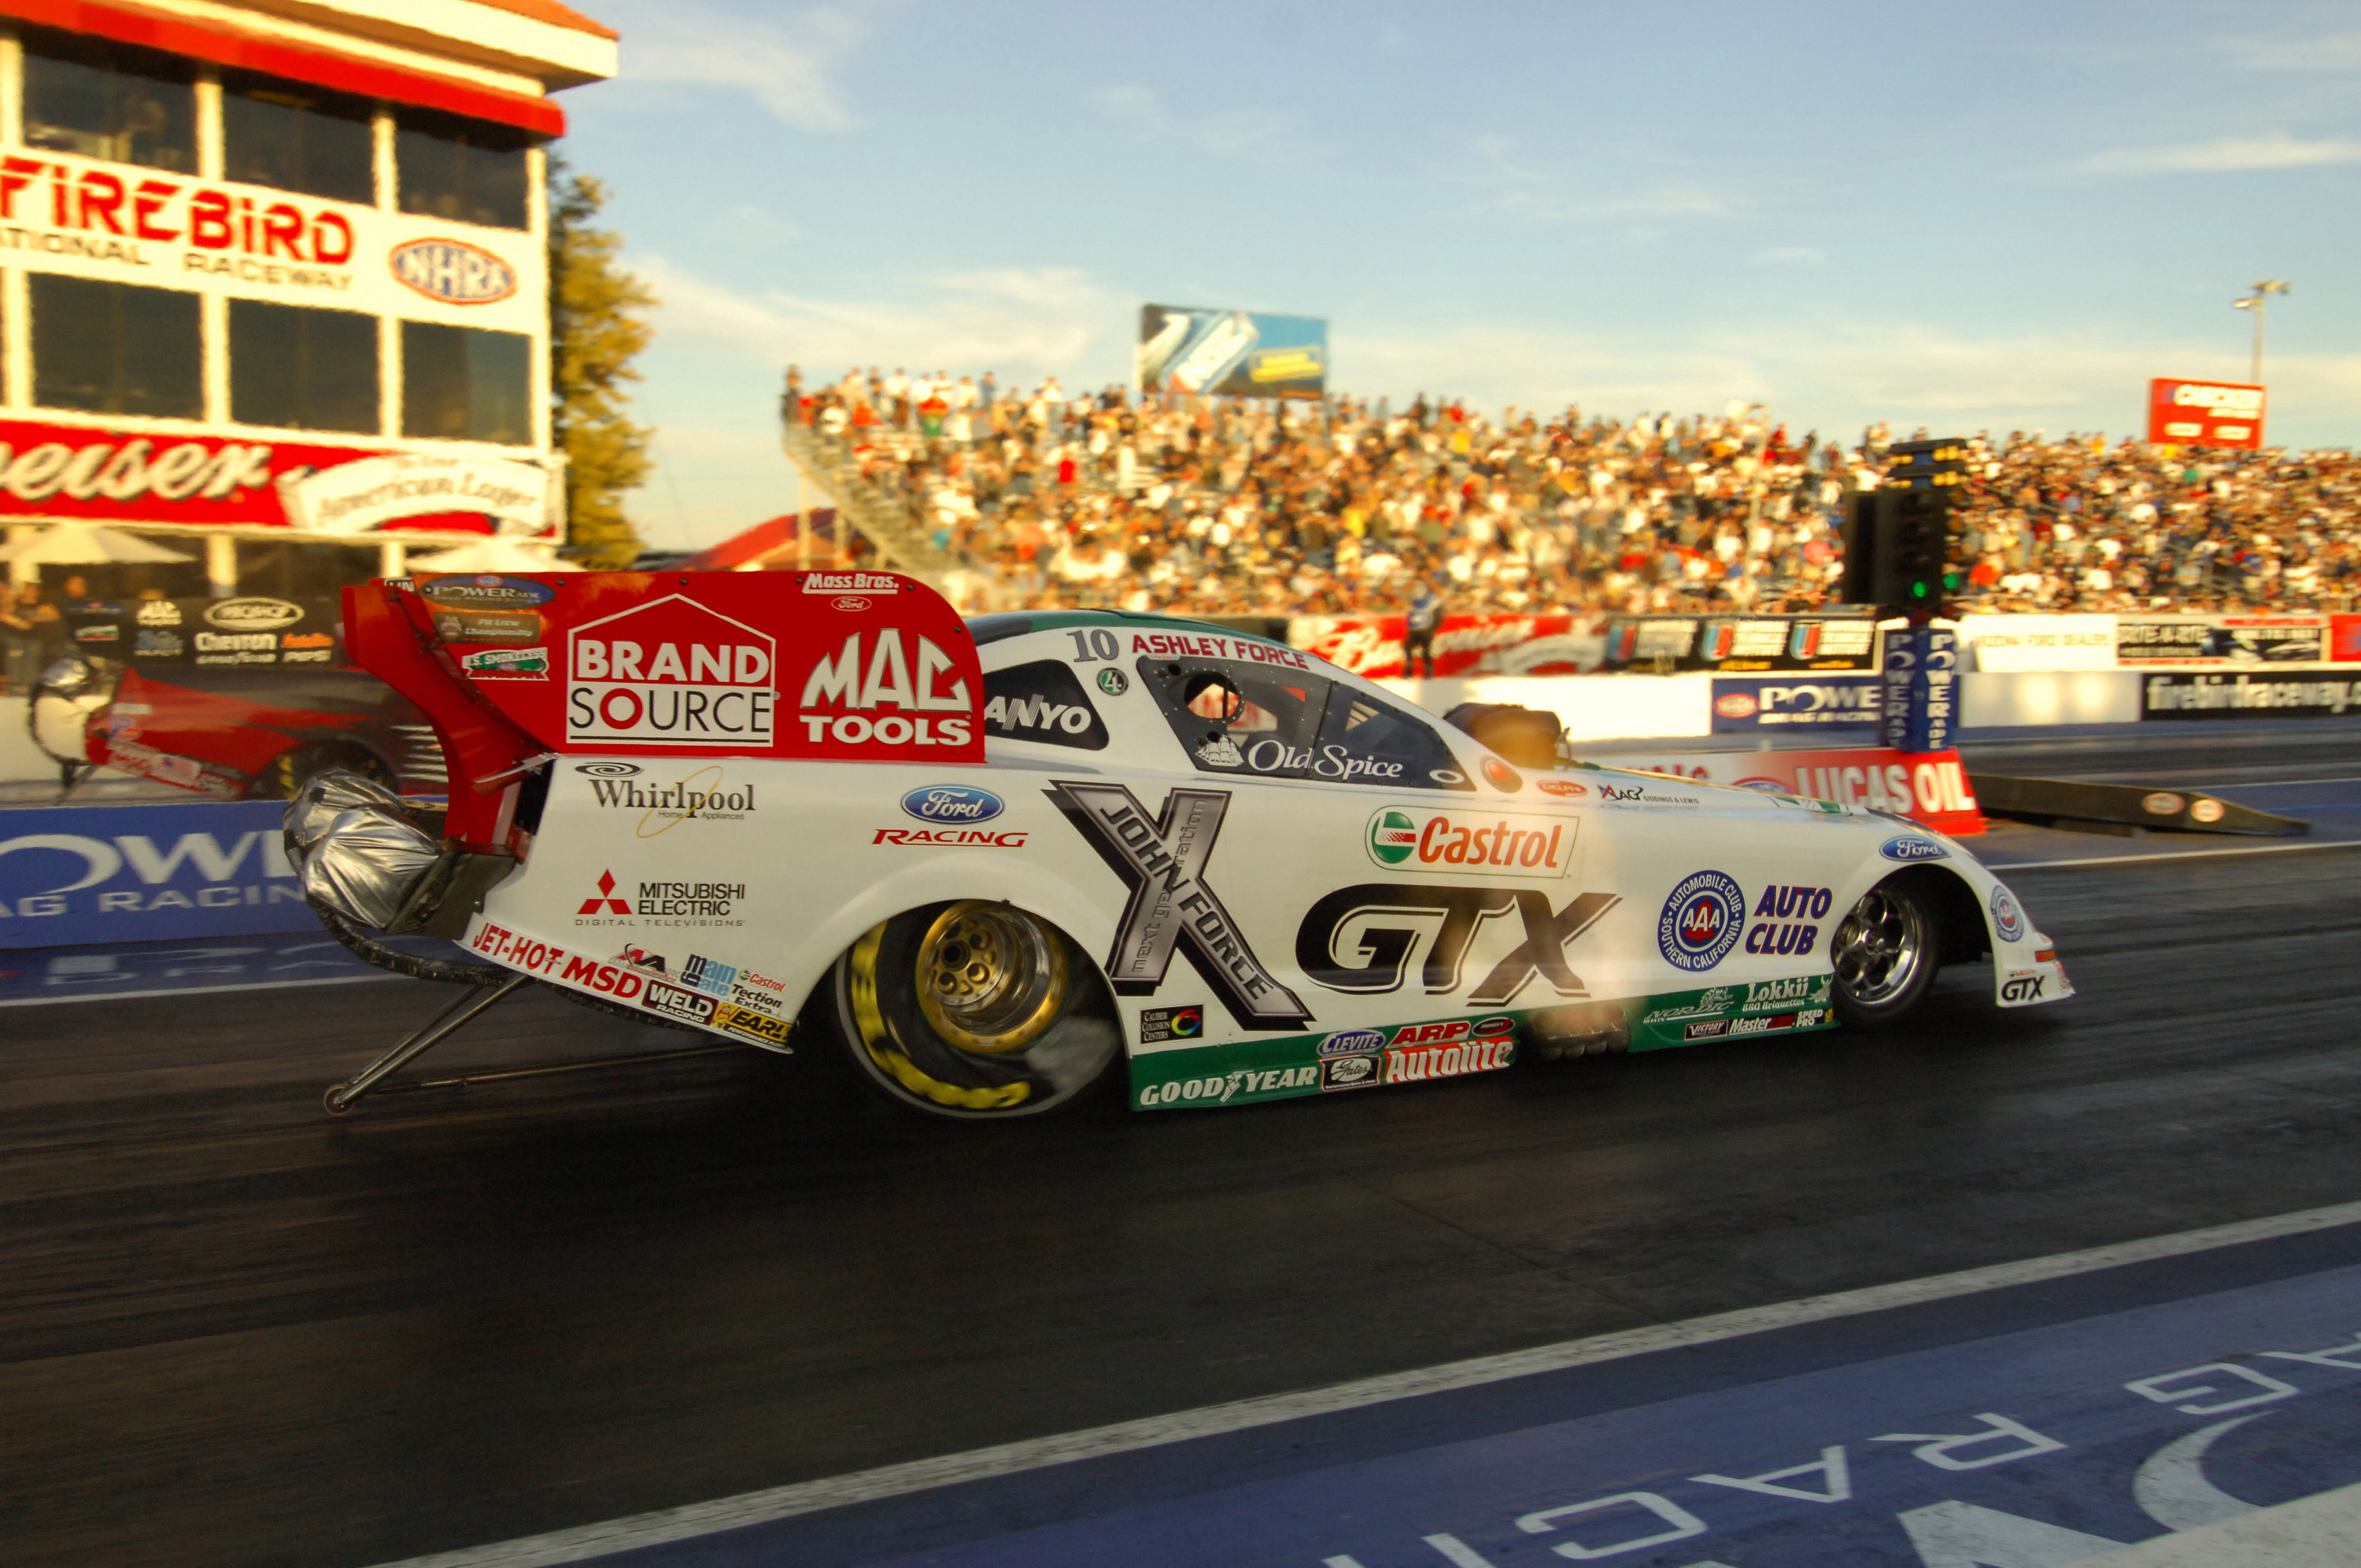 John Force at Firebird